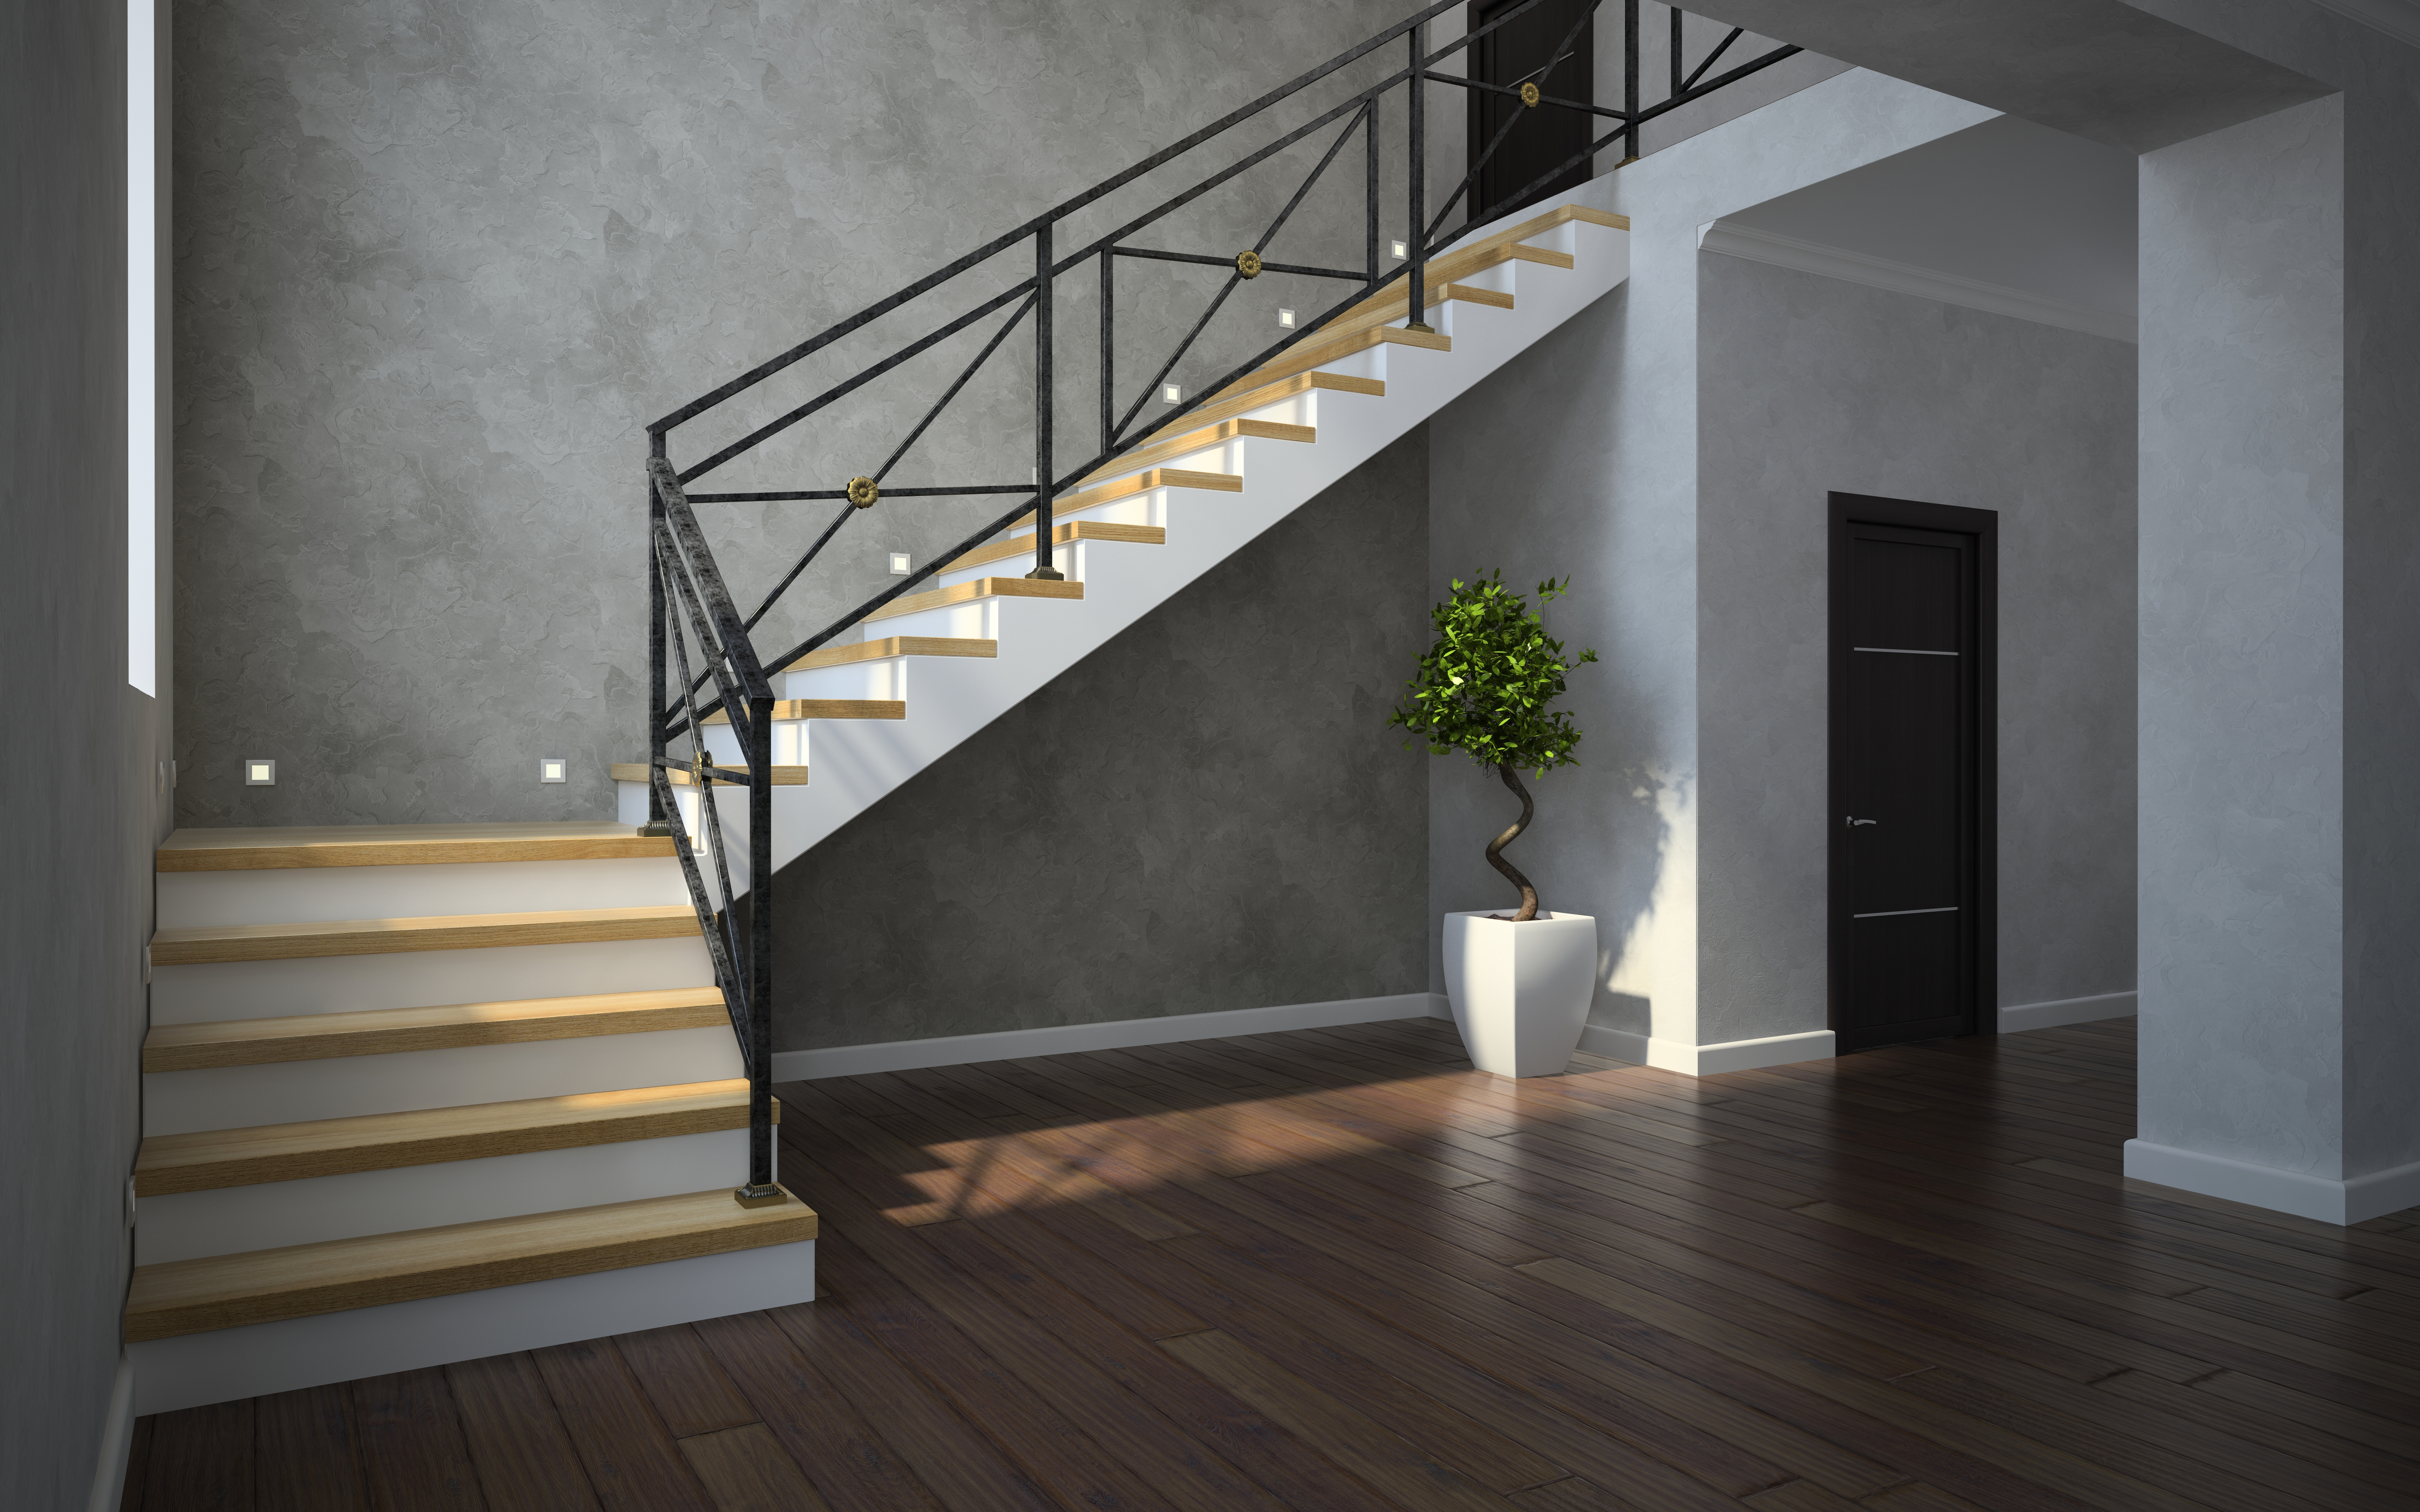 Staircase Railing Styles That Will Elevate Your Design Merit | Wood And Iron Stair Railing | Banister | Reclaimed Wood | Wrought Iron Staircase Used | Ss Railing Design | Metal